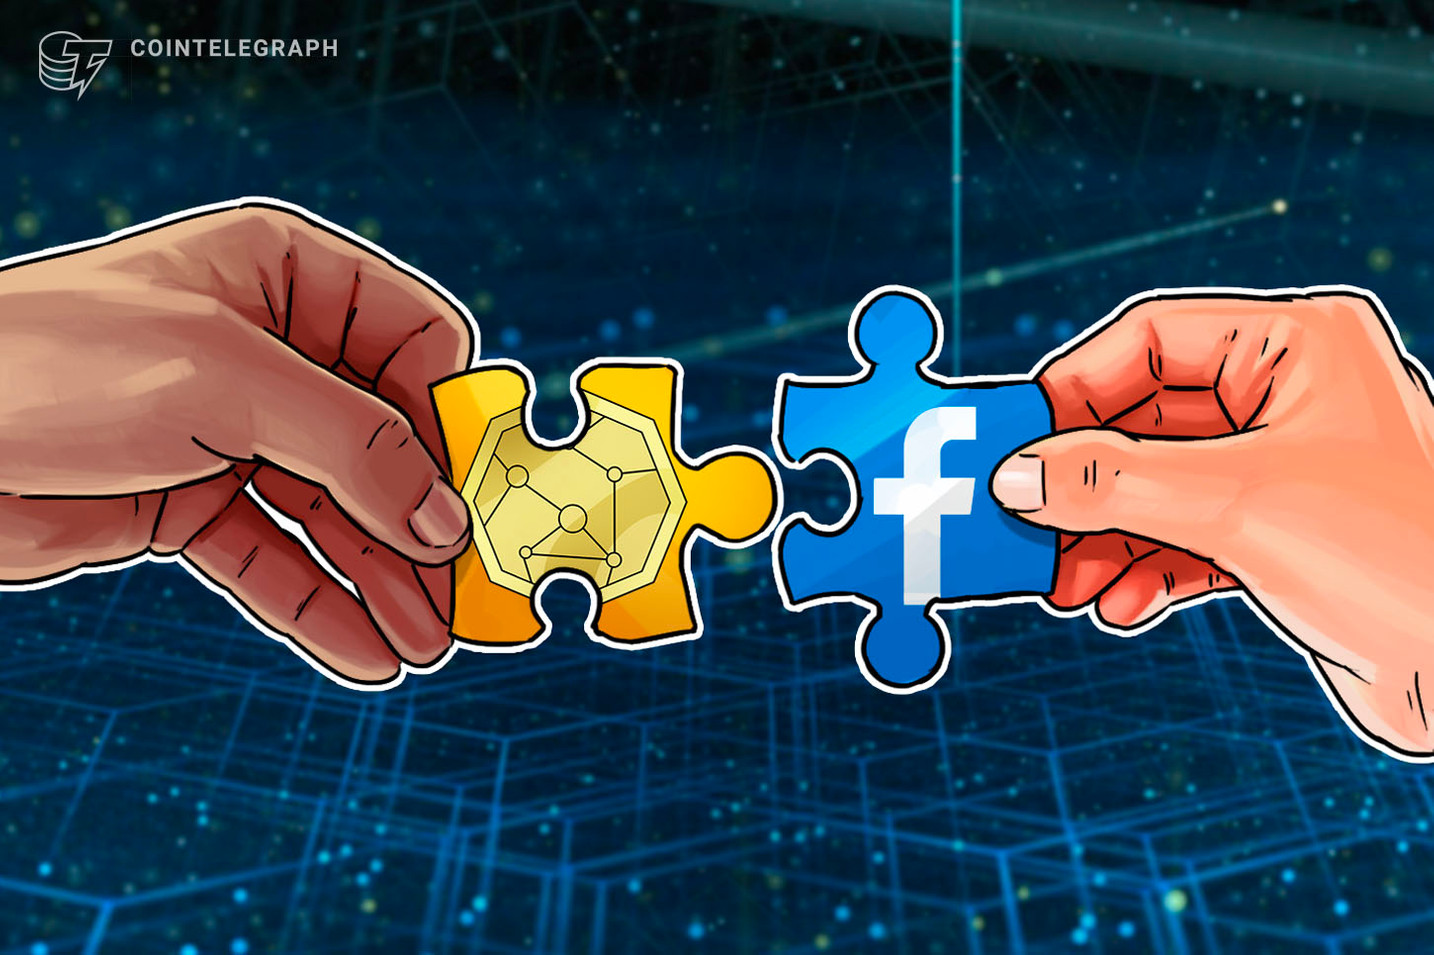 Binance Labs Partner Expresses Optimism Over Facebook's Entry Into Crypto With Libra